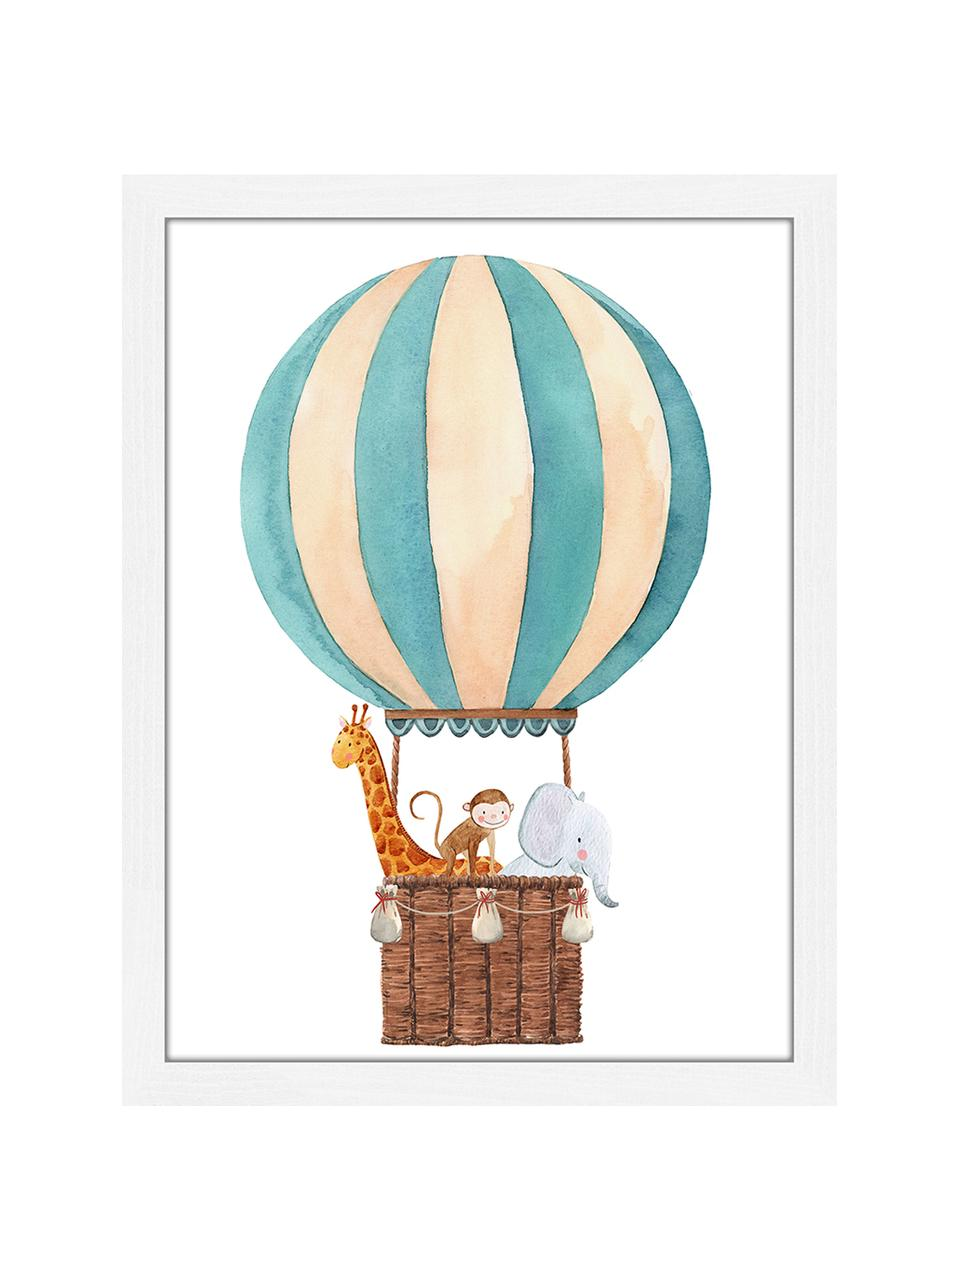 Impression numérique encadrée Balloon with Animals, Blanc, multicolore